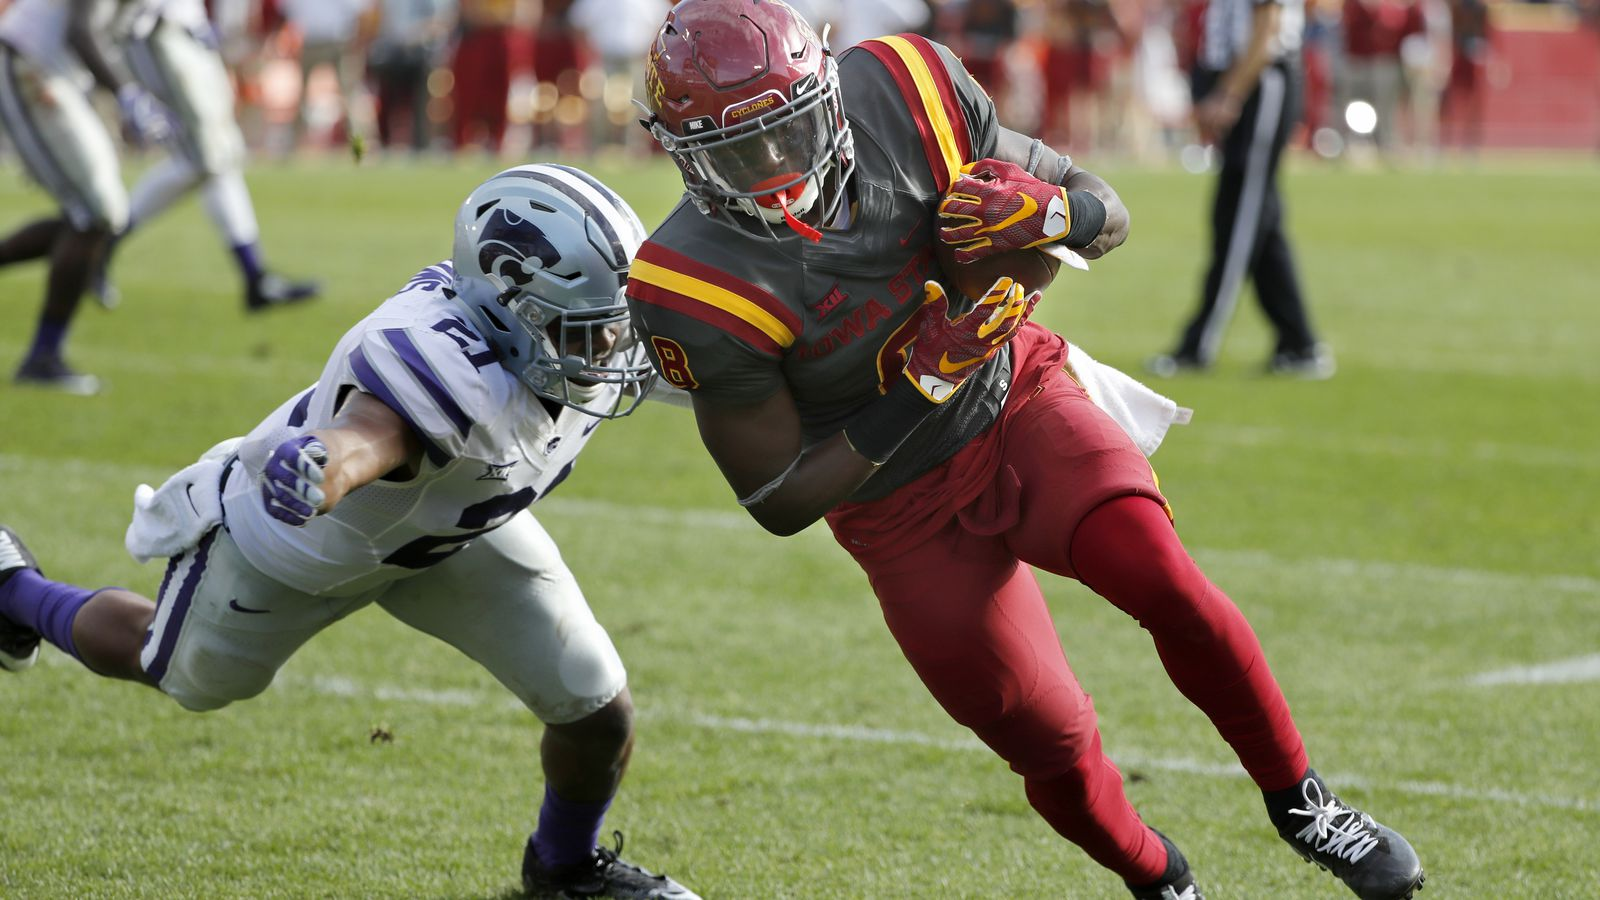 Get the latest Iowa State Cyclones news scores stats standings rumors and more from ESPN